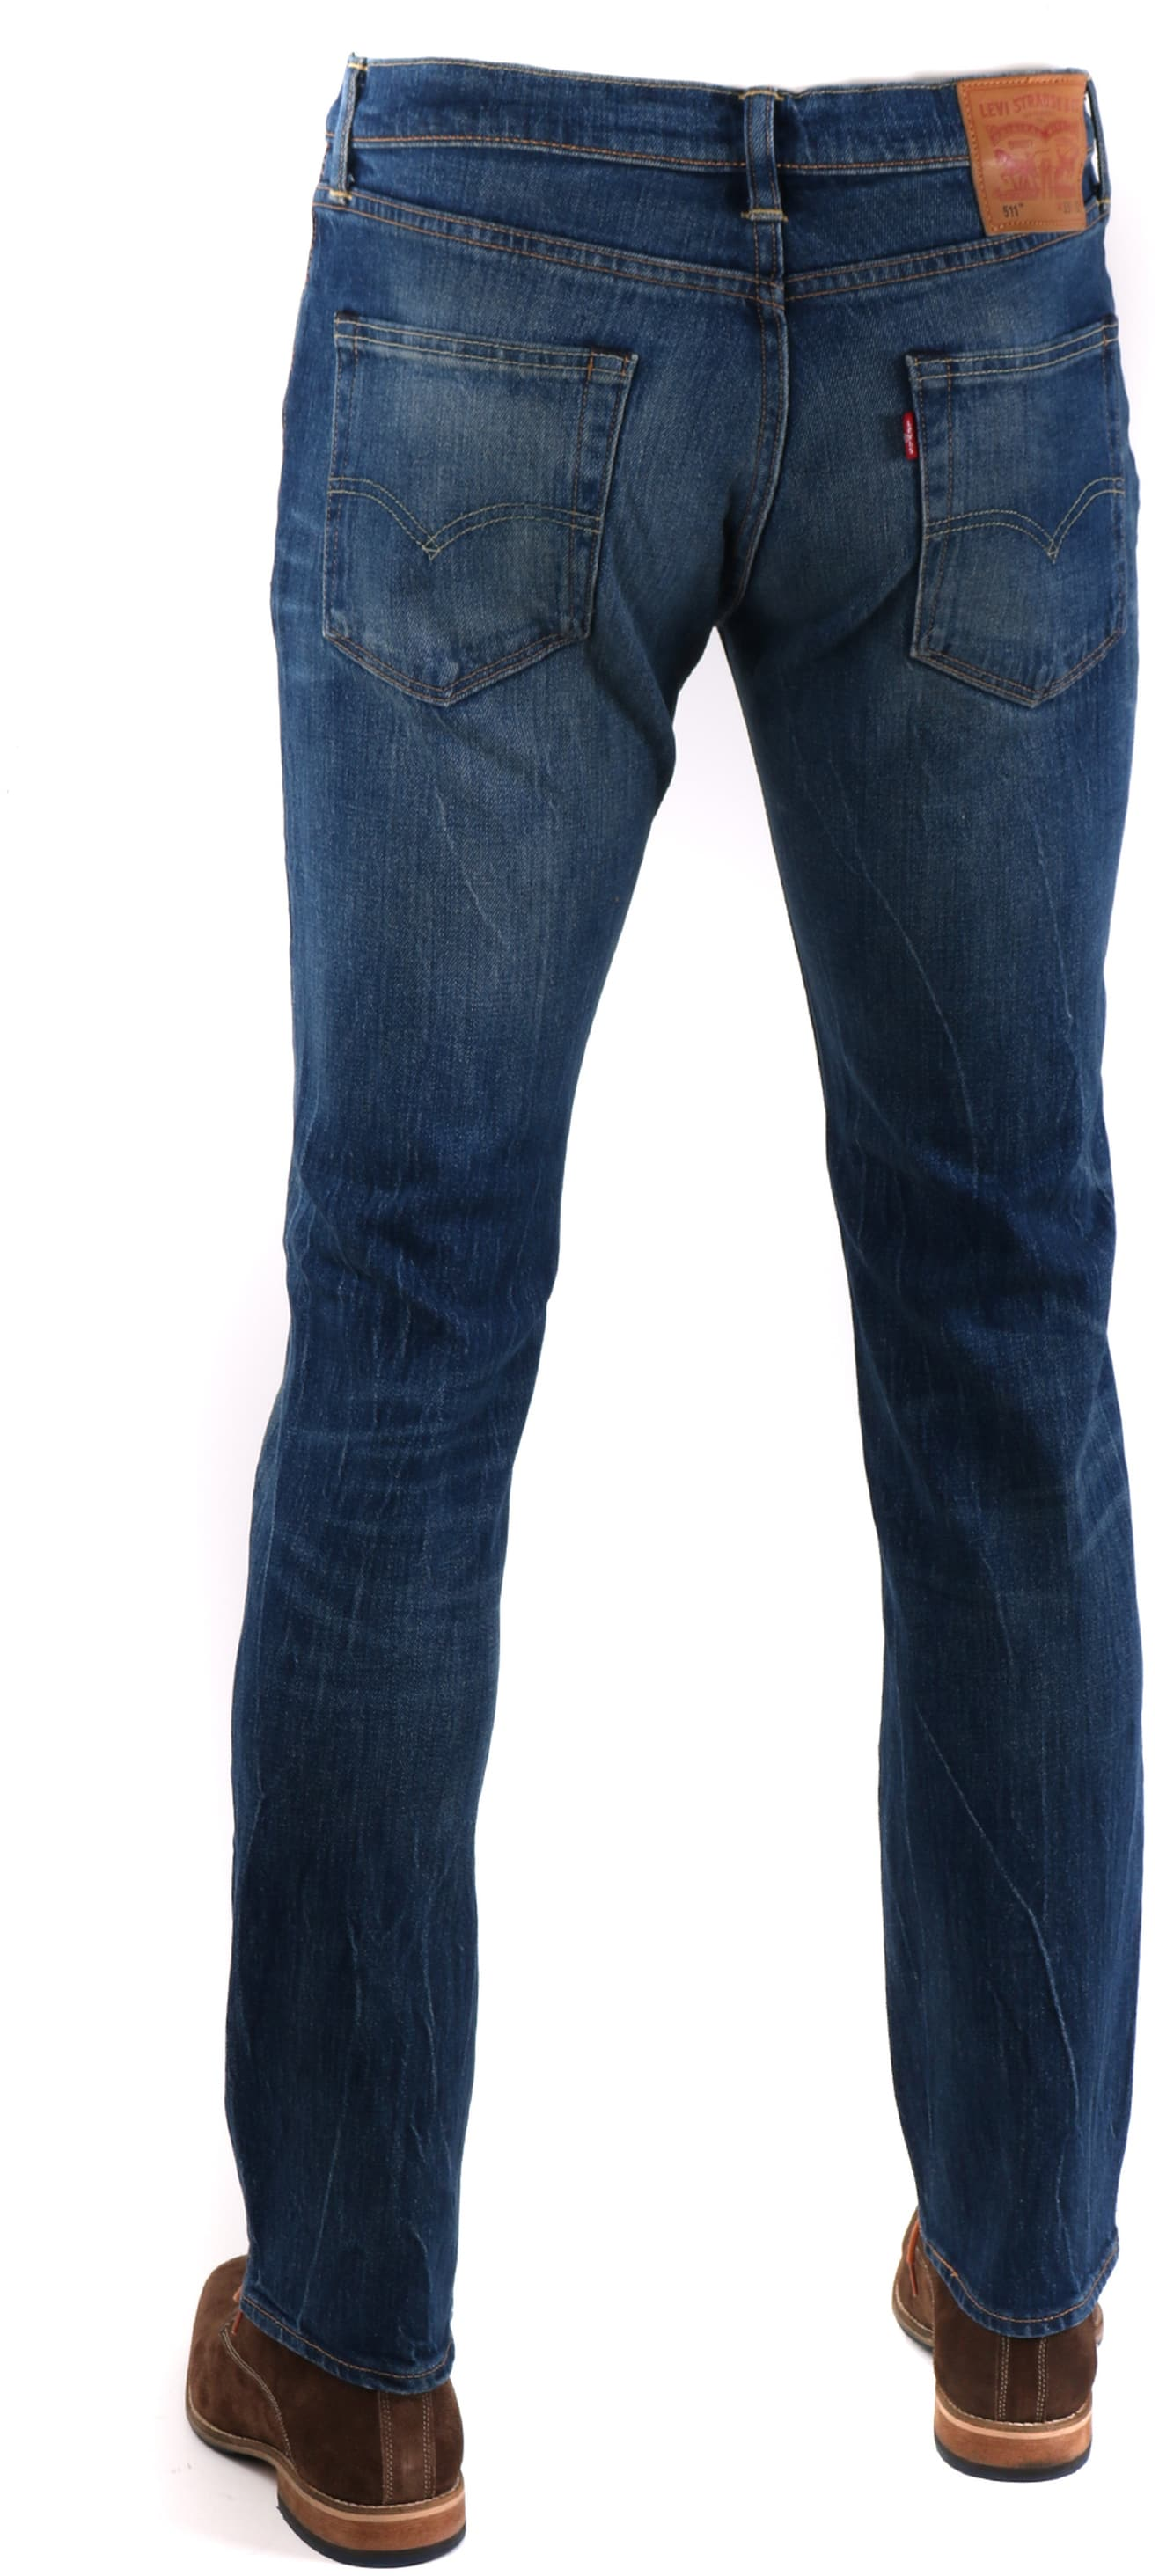 Levi's 511 Jeans Slim Fit Darkblue 1876 foto 1